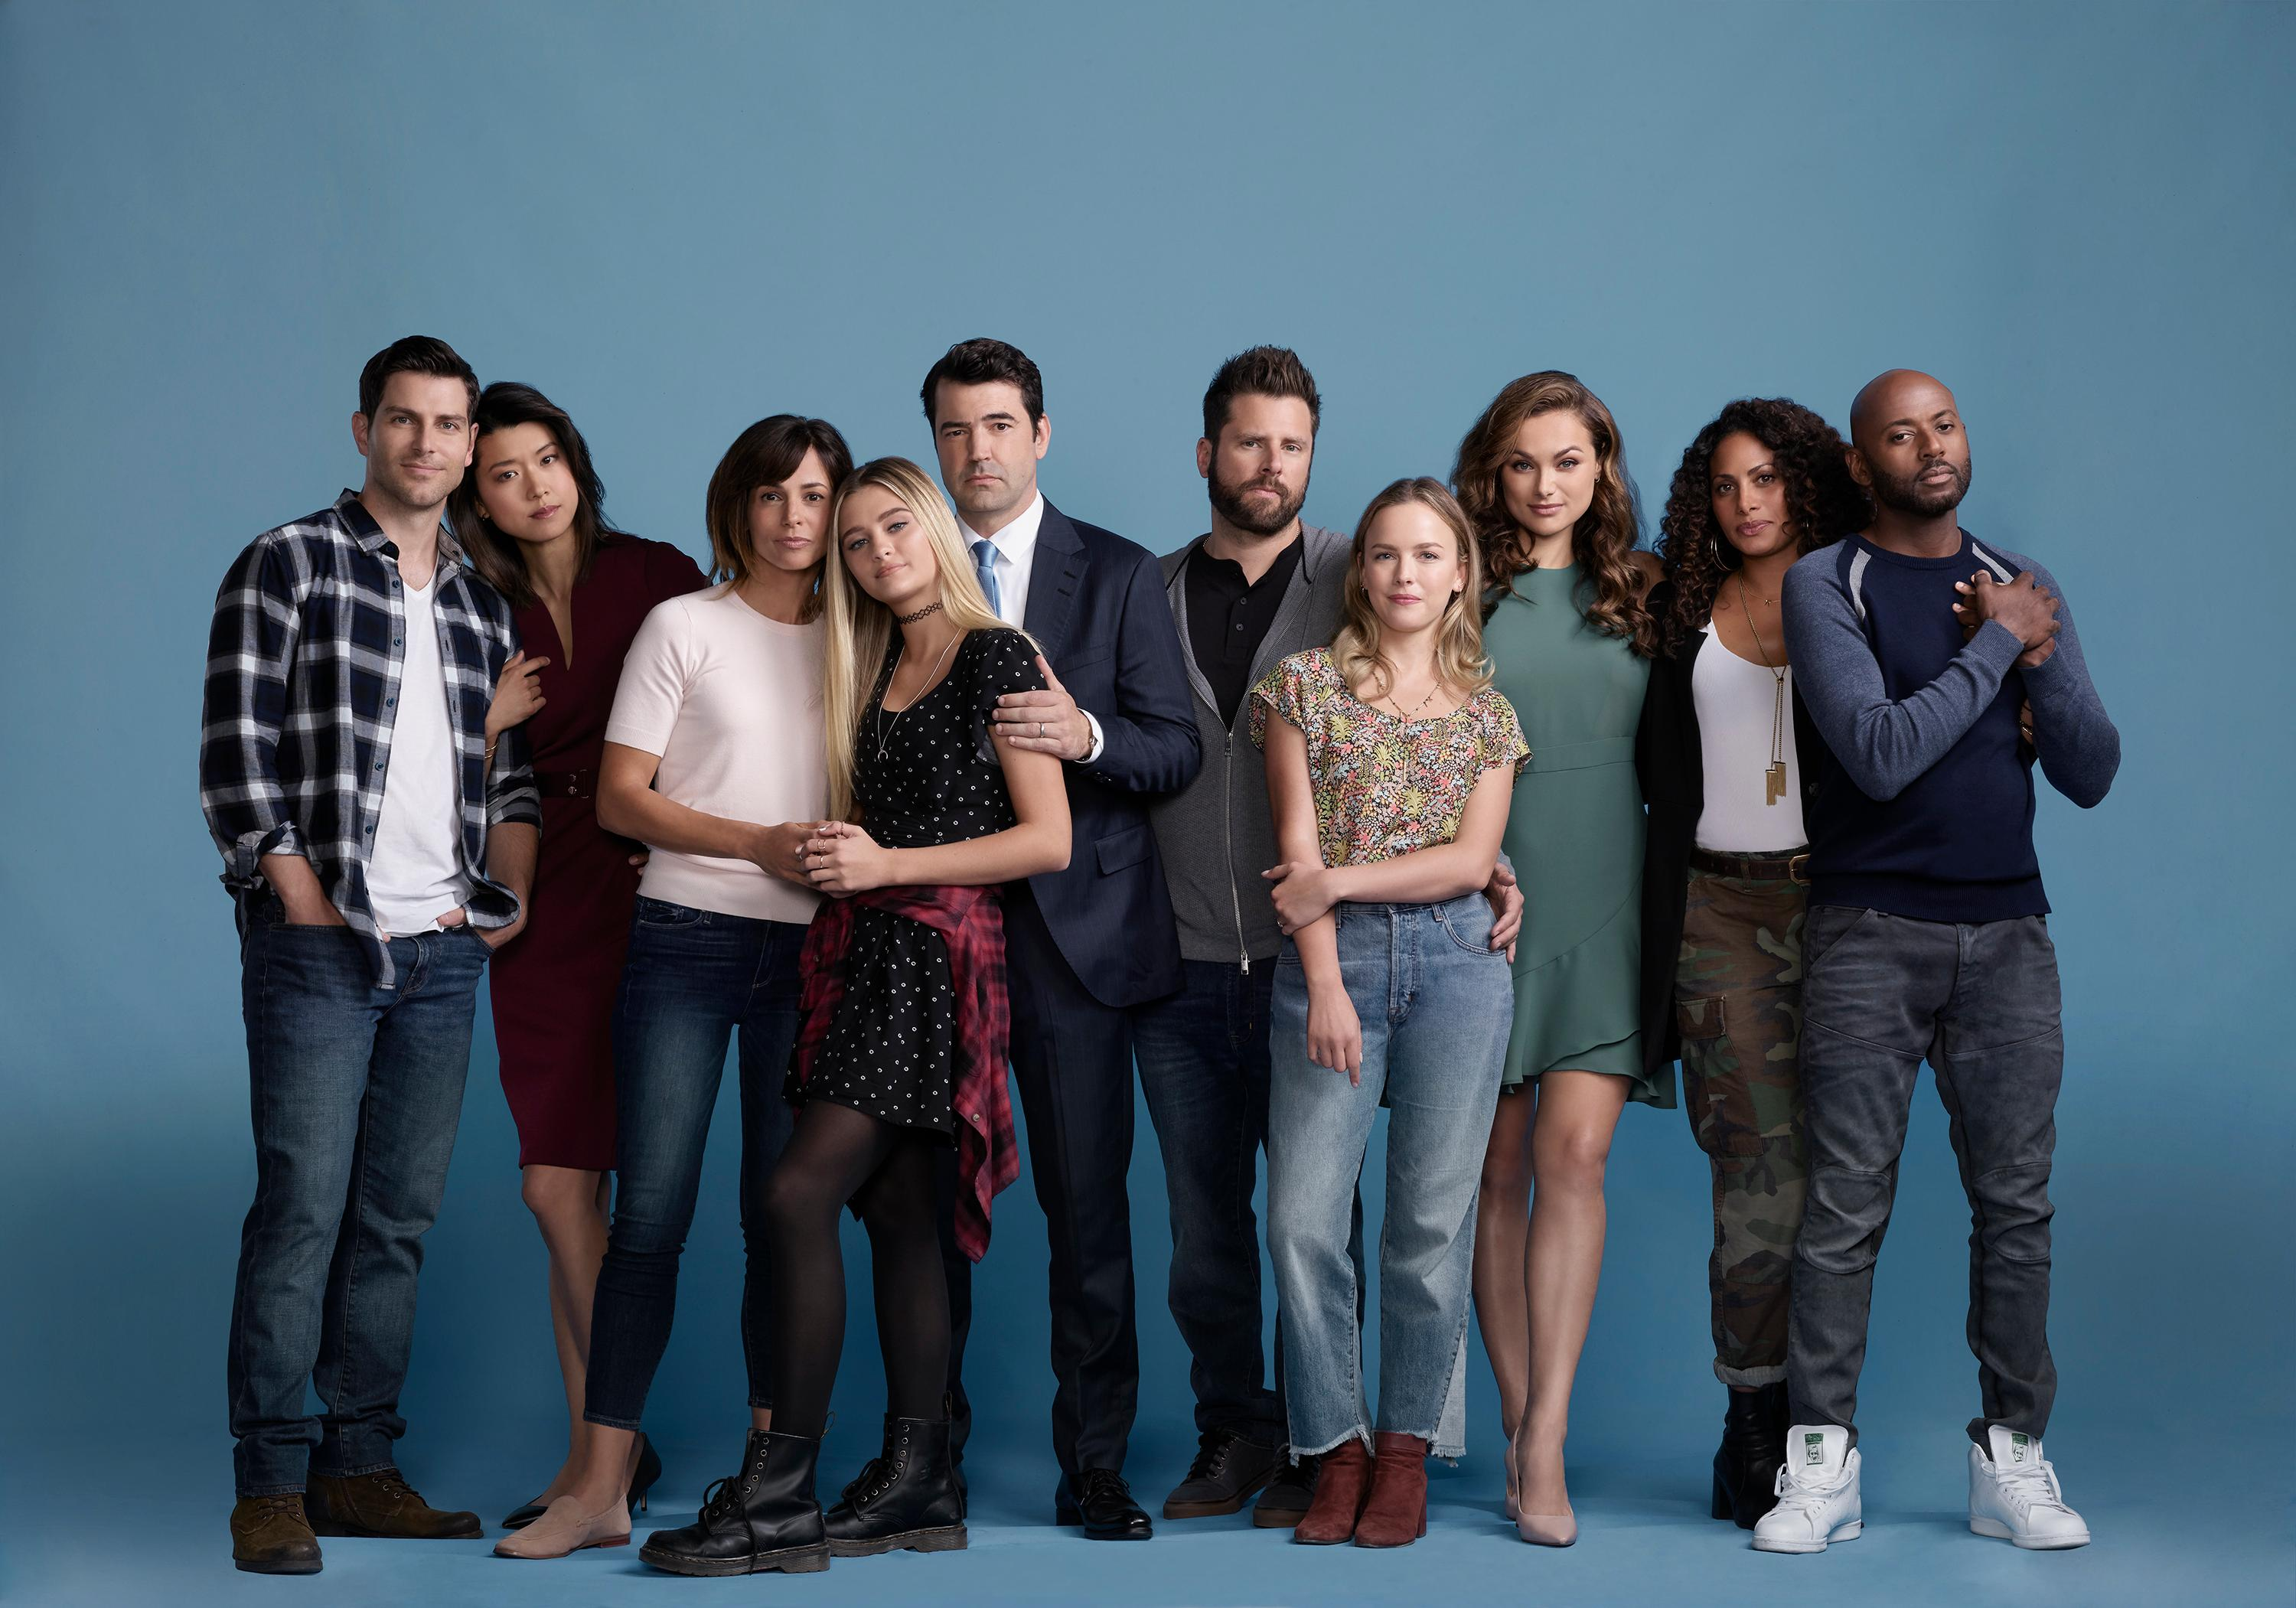 "A MILLION LITTLE THINGS - ABC's ""A Million Little Things"" stars David Giuntoli as Eddie, Grace Park as as Katherine, Stephanie Szostak as Delilah, Lizzy Greene as Sophie, Ron Livingston as Jon, James Roday as Gary, Allison Miller as Maggie, Christina Ochoa as Ashley, Christina Moses as Regina, and Romany Malco as Rome. (ABC/Matthias Clamer)"